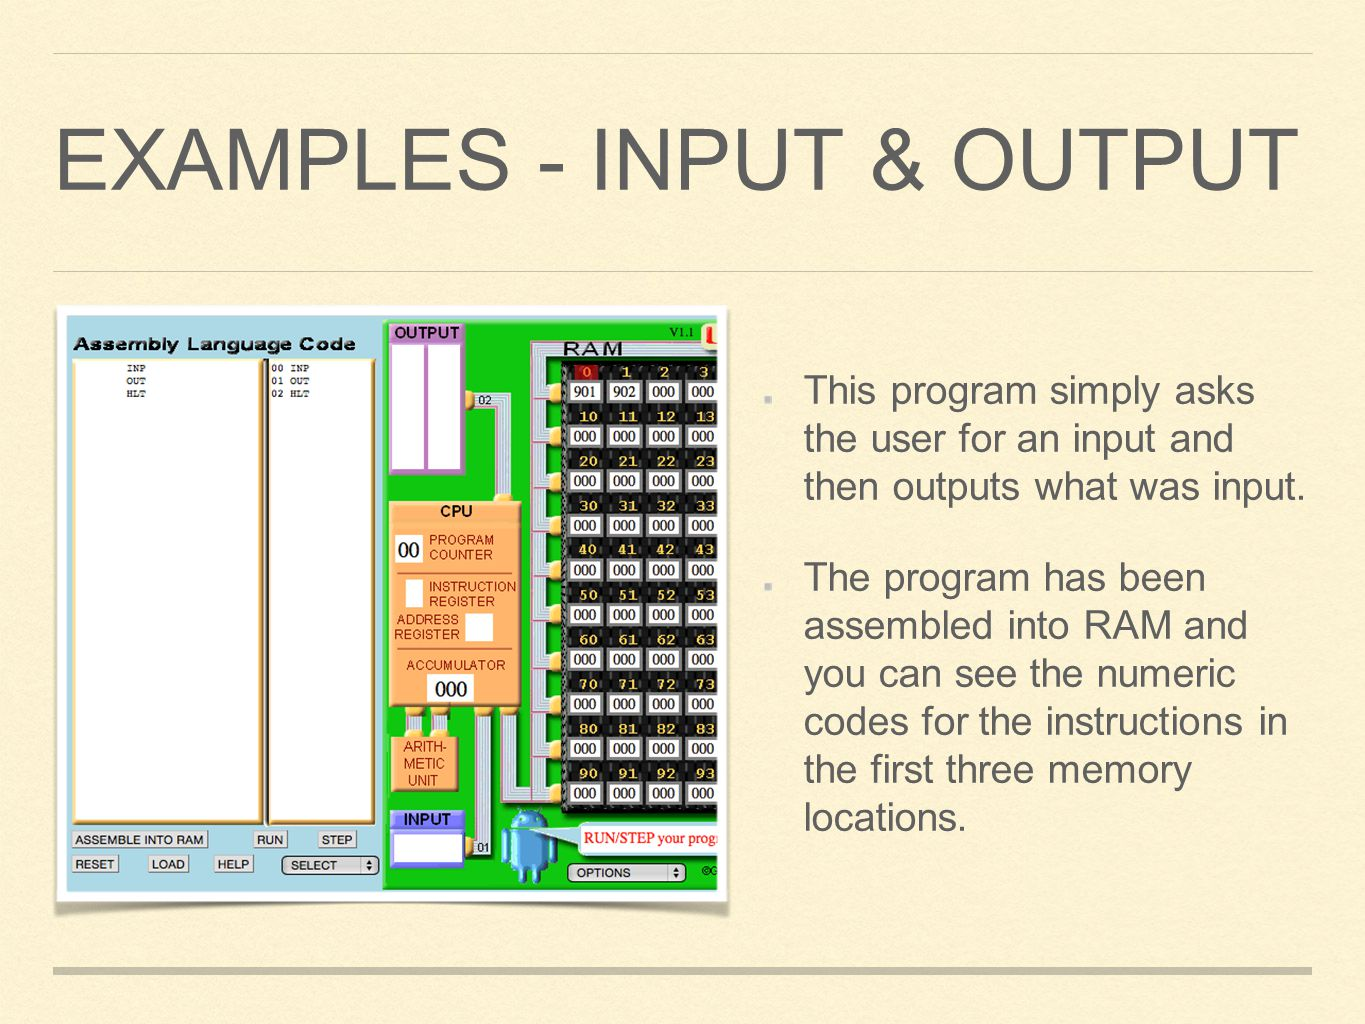 EXAMPLES - INPUT & OUTPUT This program simply asks the user for an input and then outputs what was input. The program has been assembled into RAM and